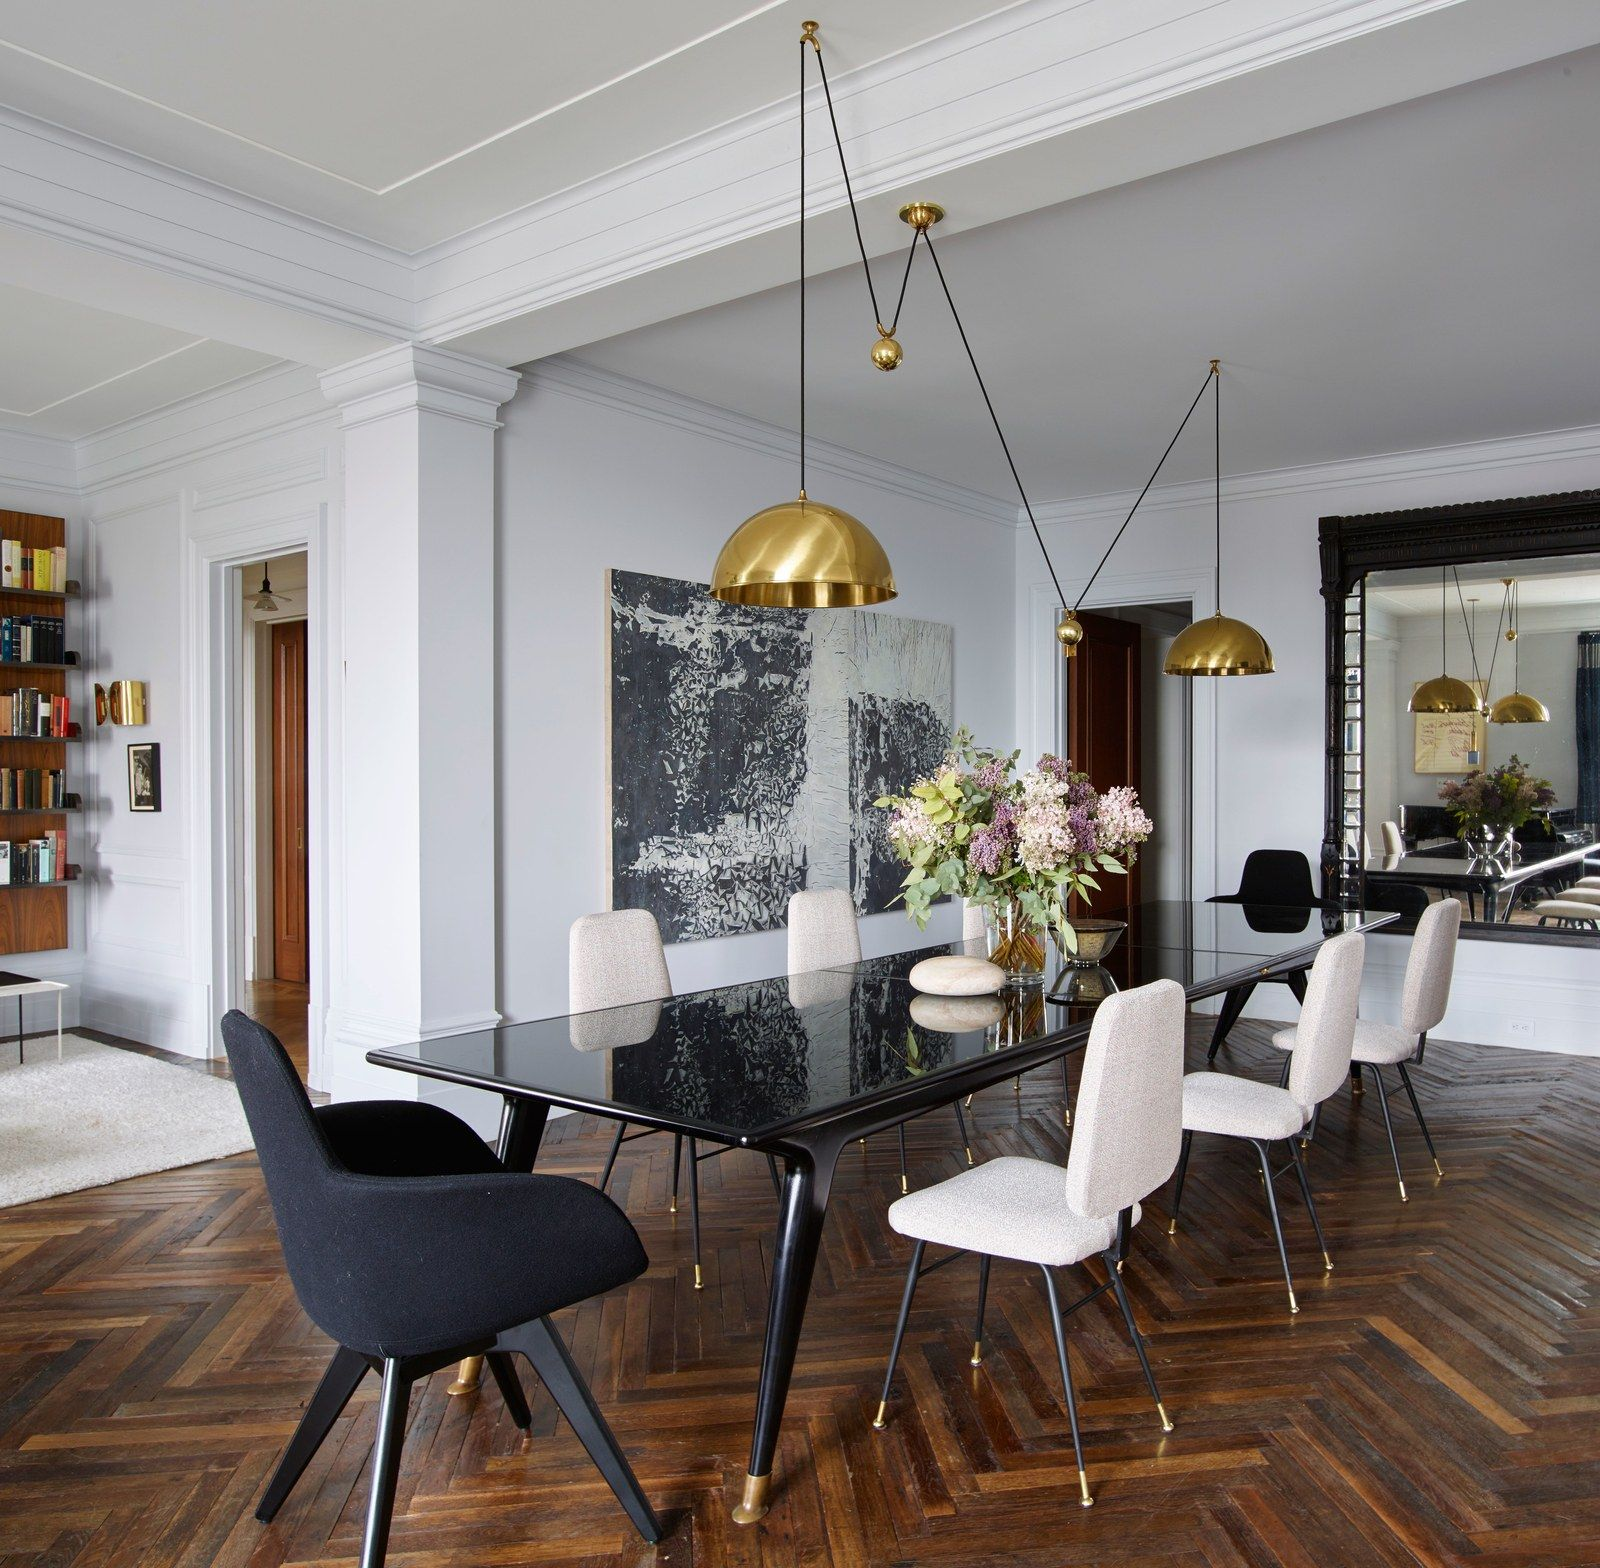 Center Park Apartments: An Elegant Aerie Overlooking Central Park Is Revived With